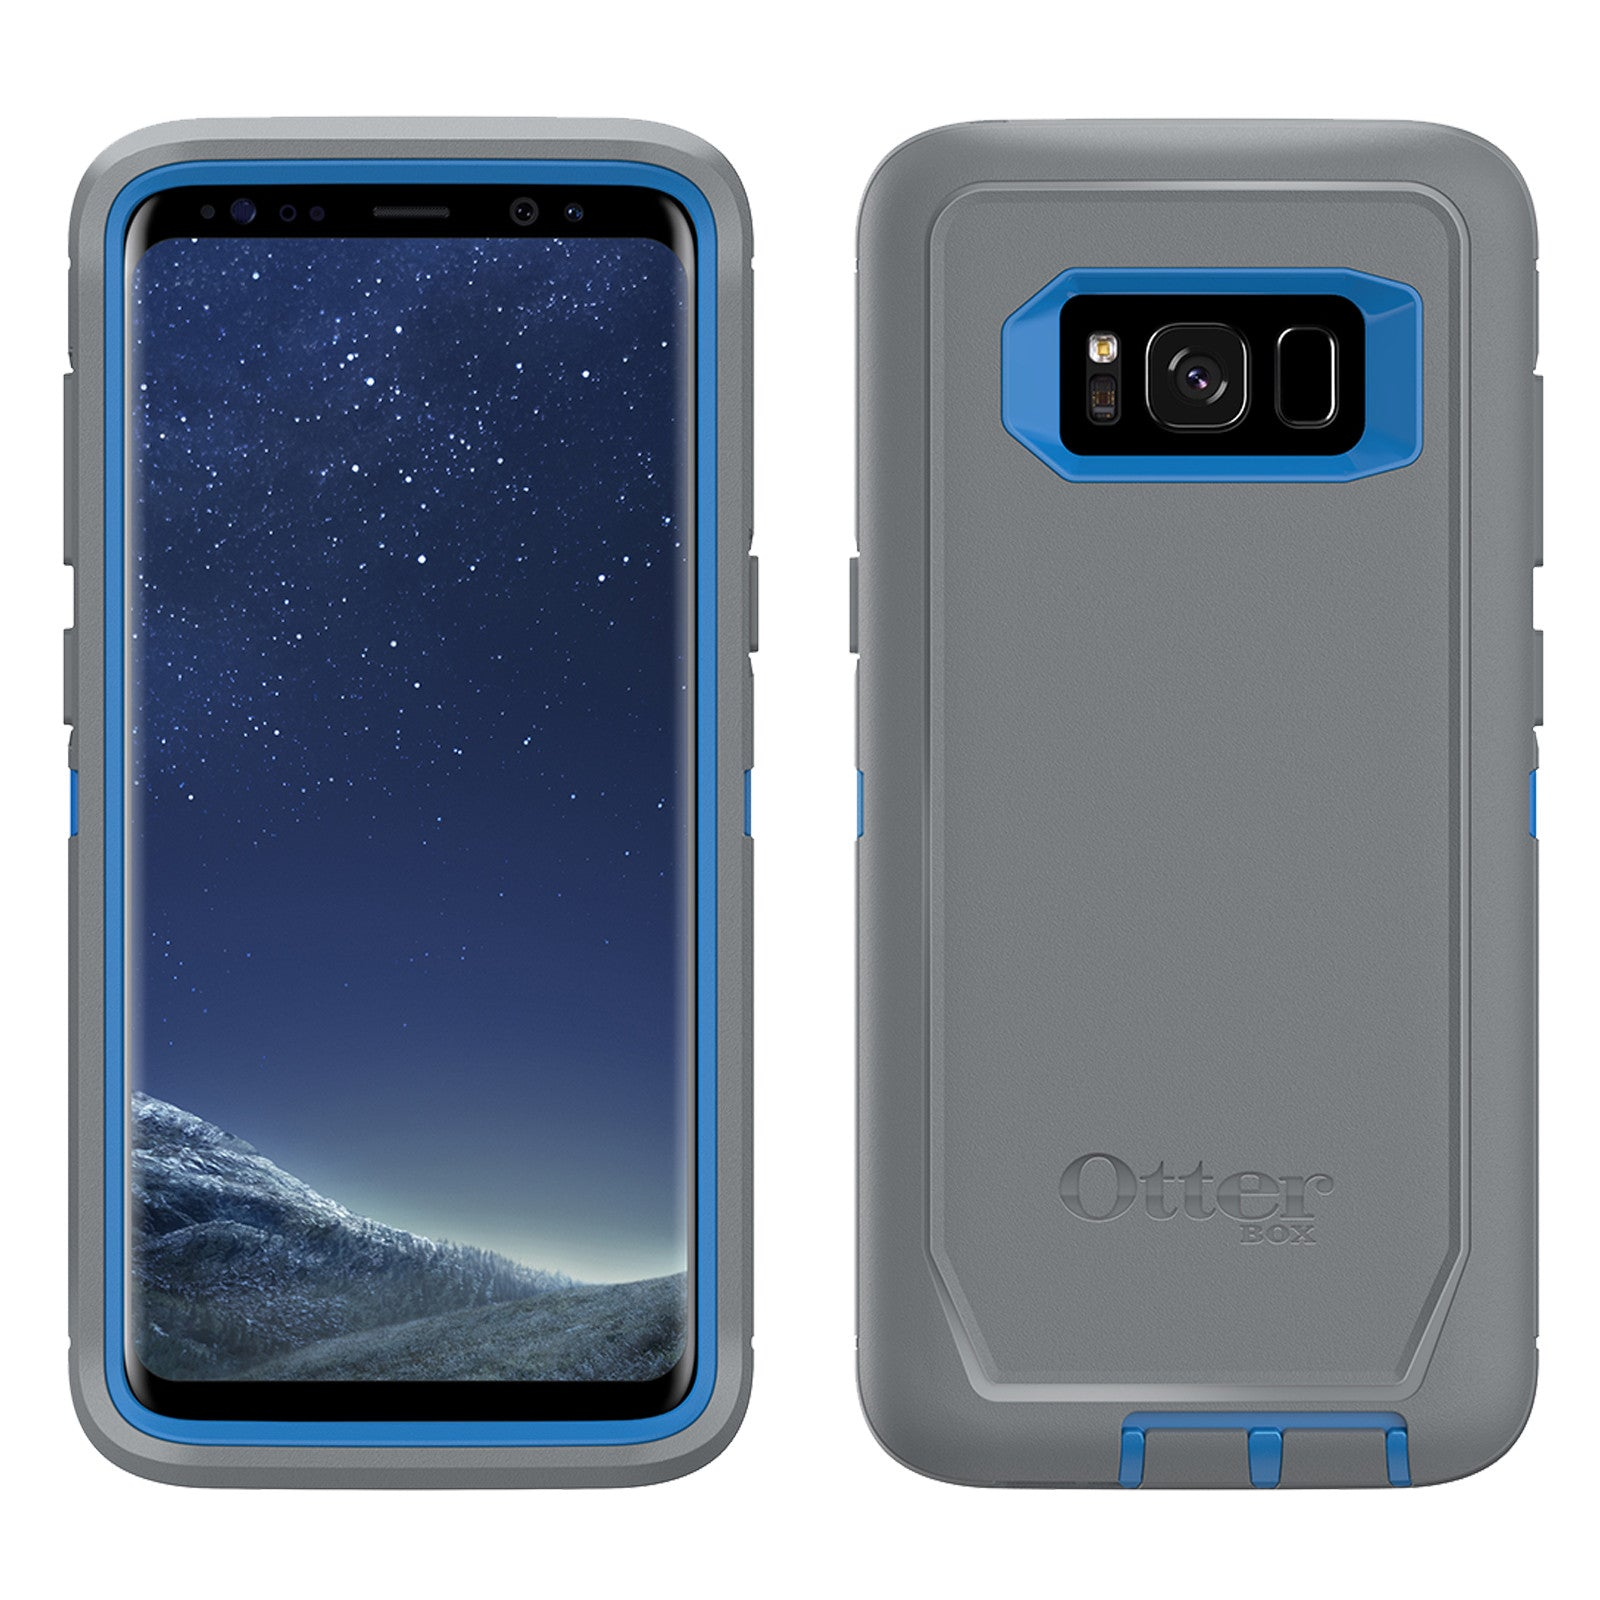 new concept f4cd1 17445 Otterbox Defender Case For Samsung Galaxy S8 Plus - Marathoner Grey/Blue